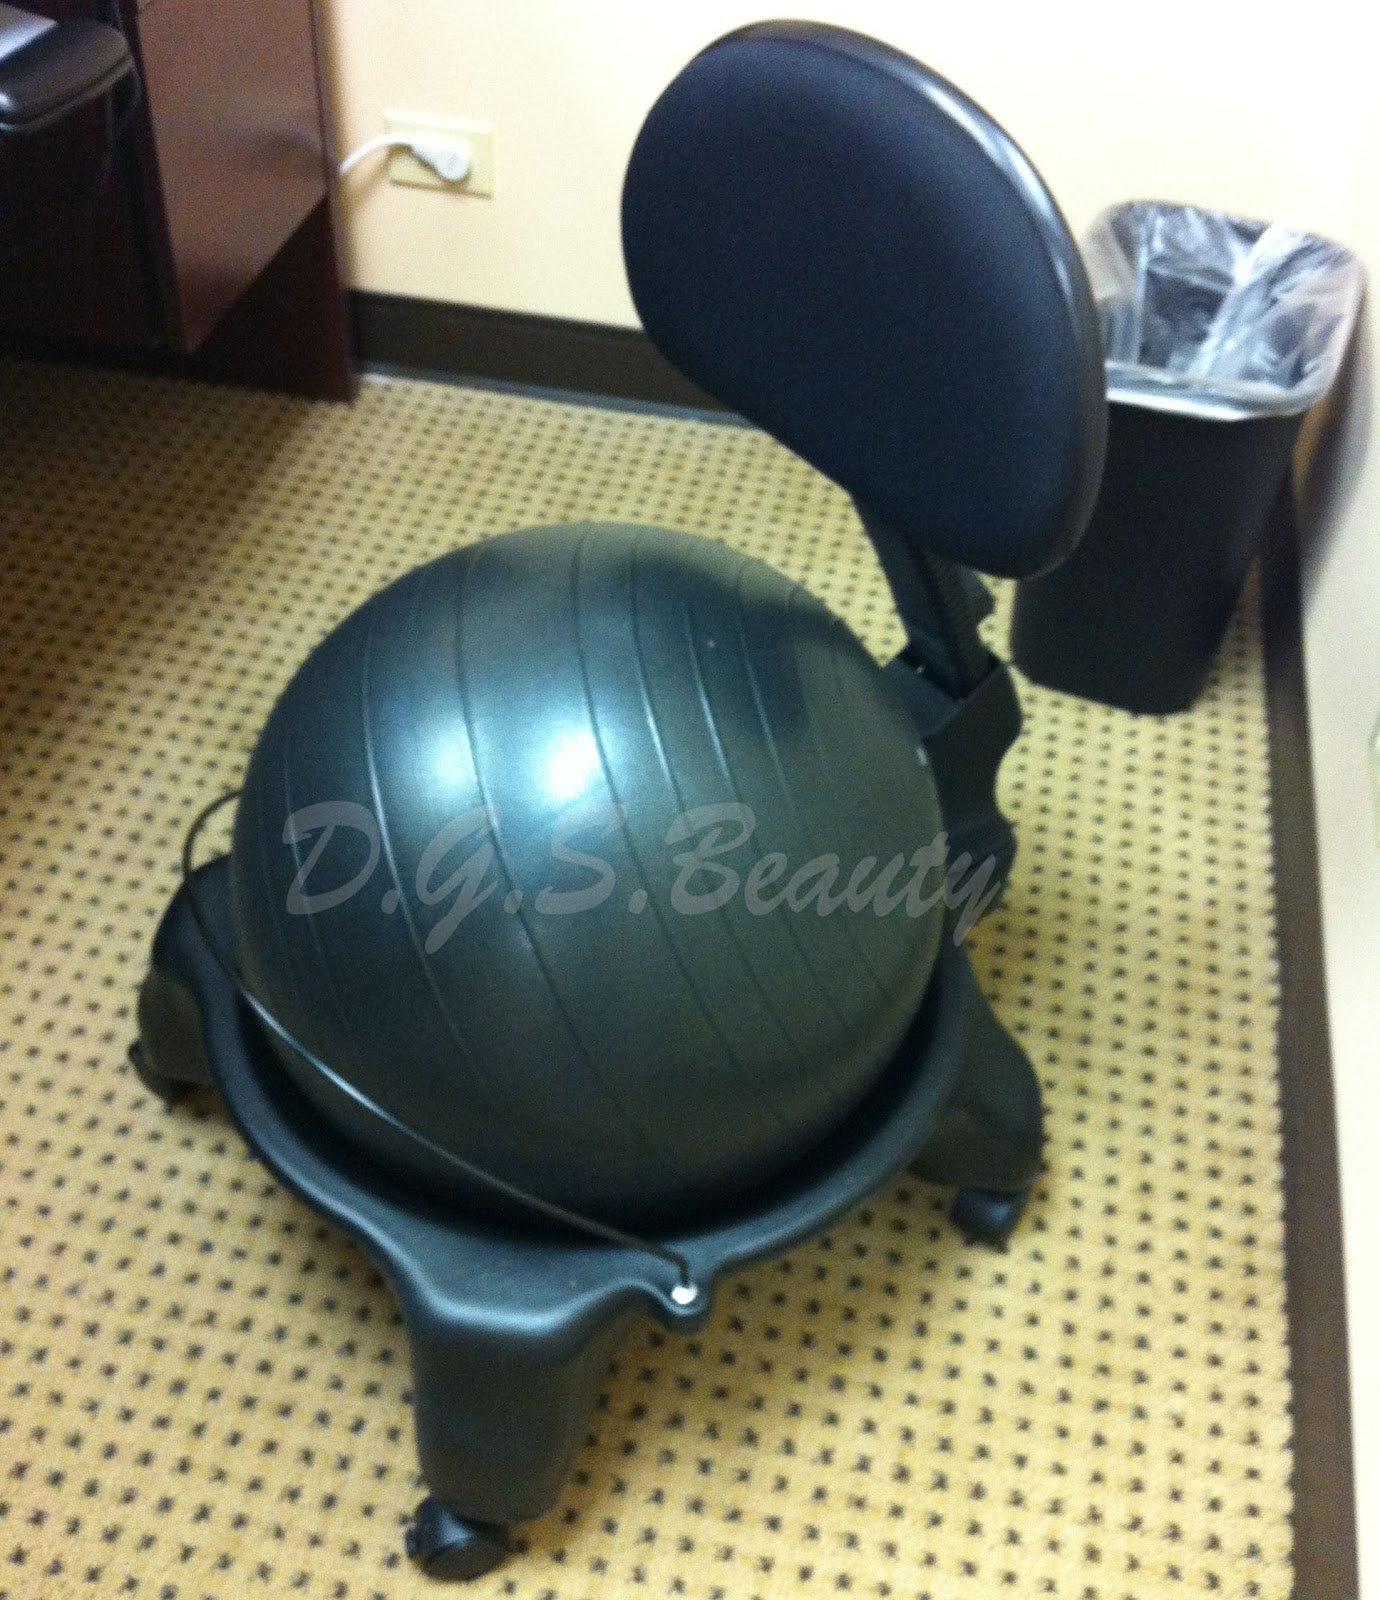 yoga ball chair reviews fishing cuzo review fitness d g s beauty